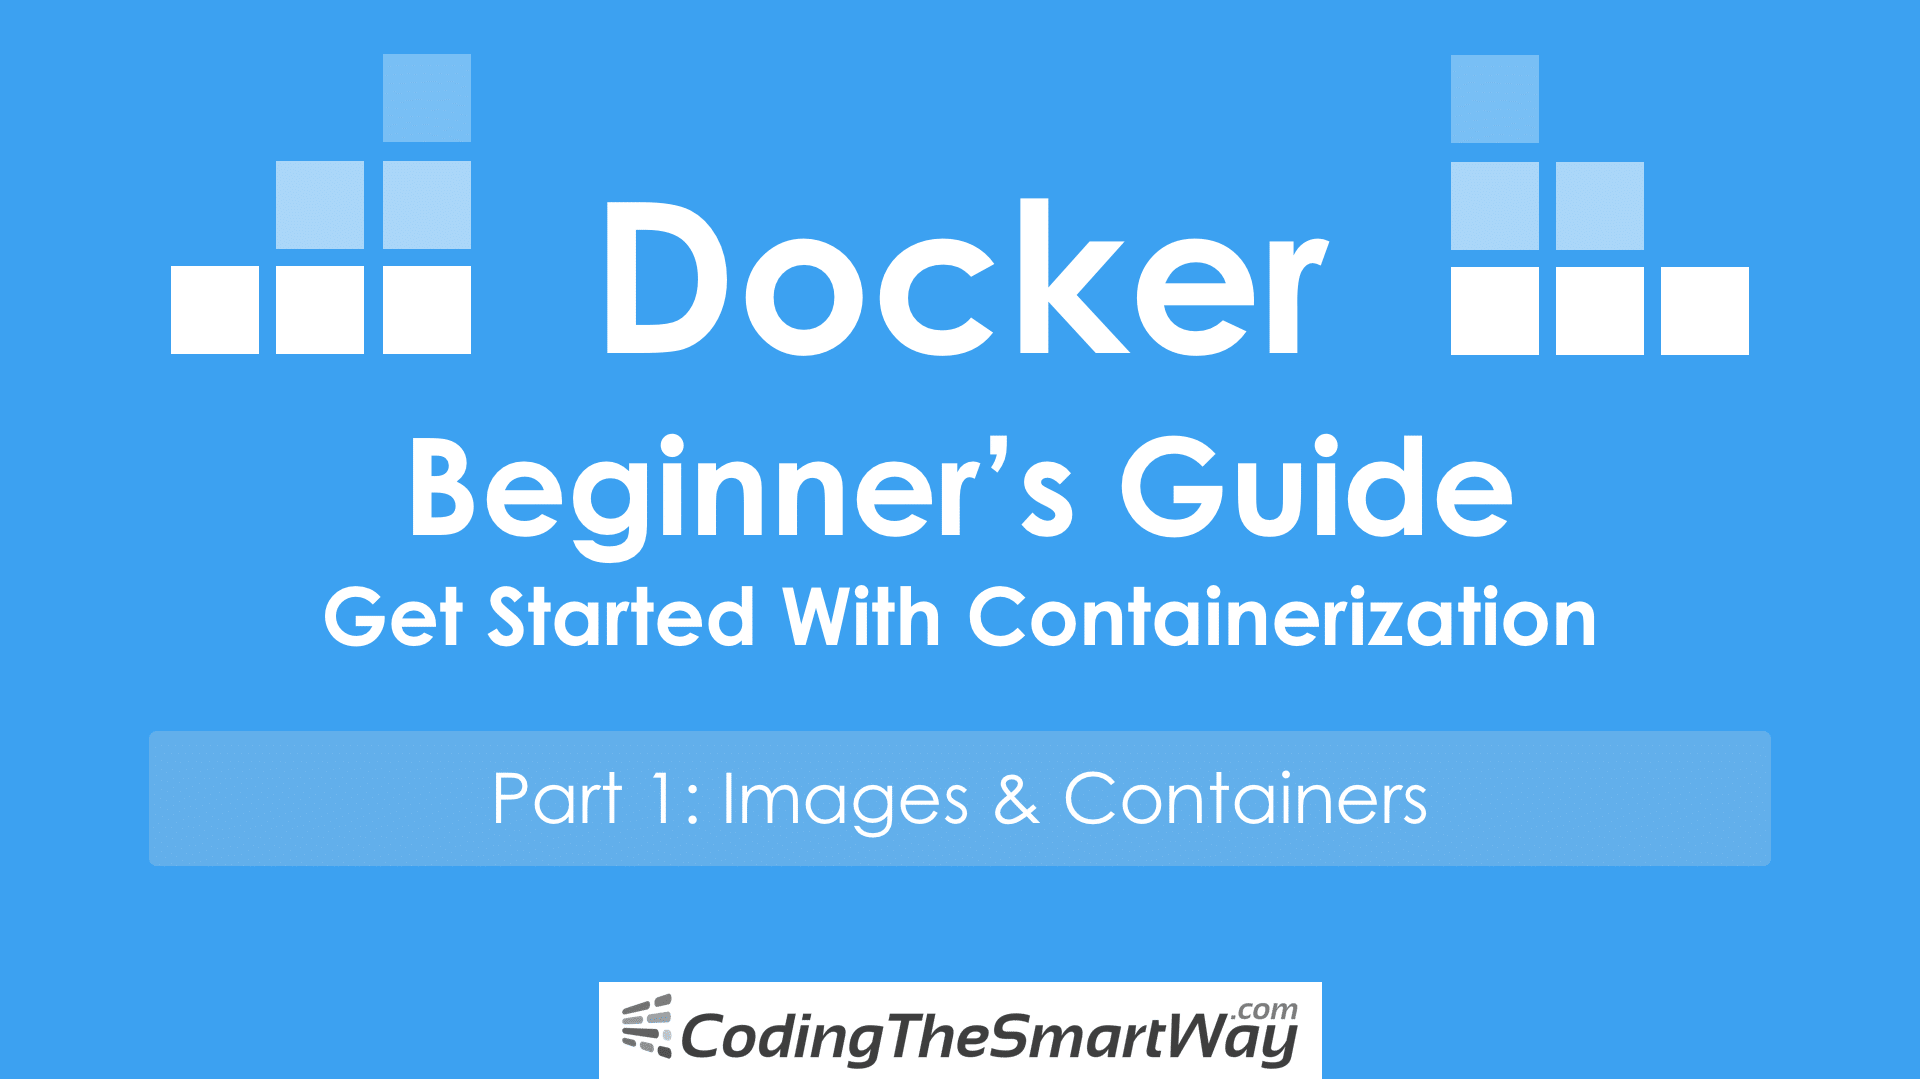 Docker - Beginner's Guide - Part 1: Images & Containers